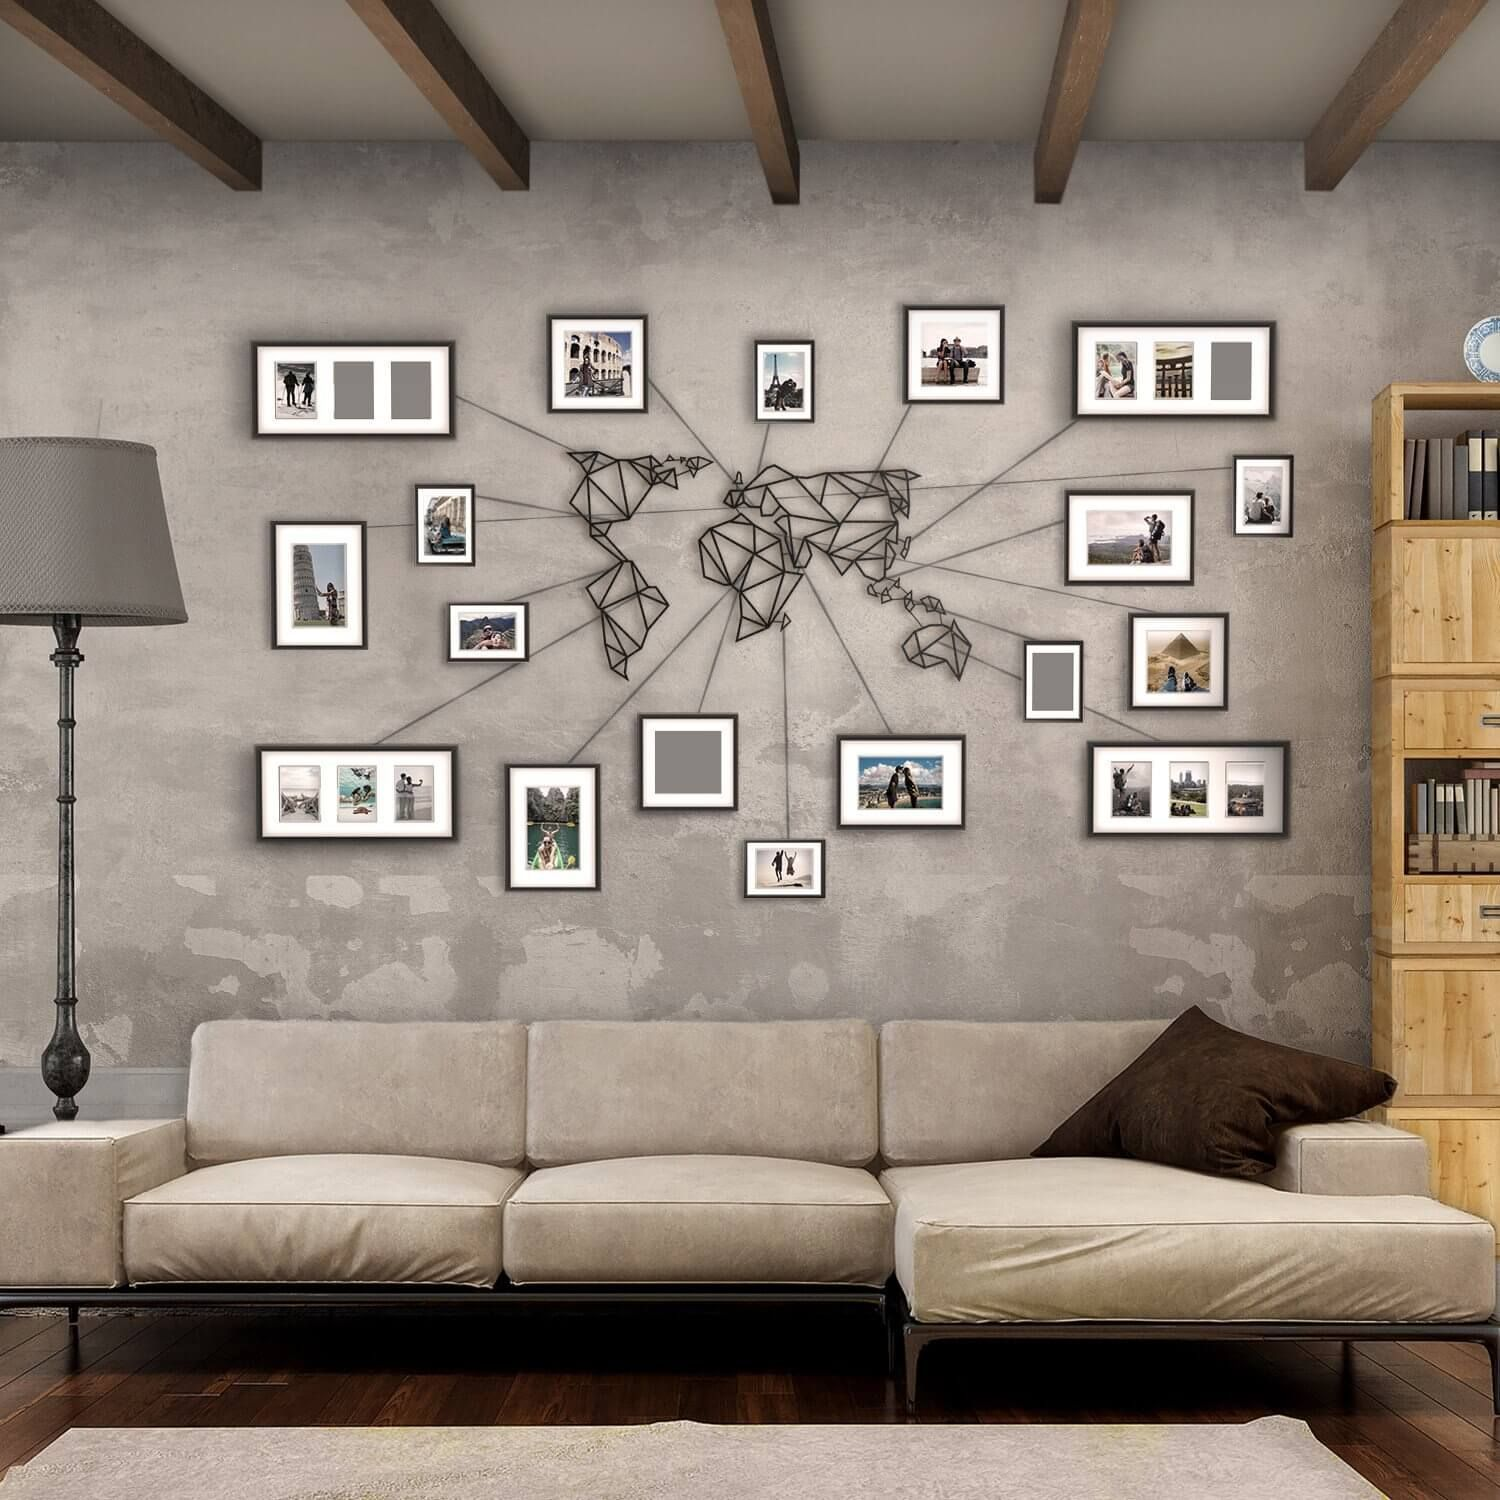 Unique Travel Gift Wall Frames Home Decor Home Decor